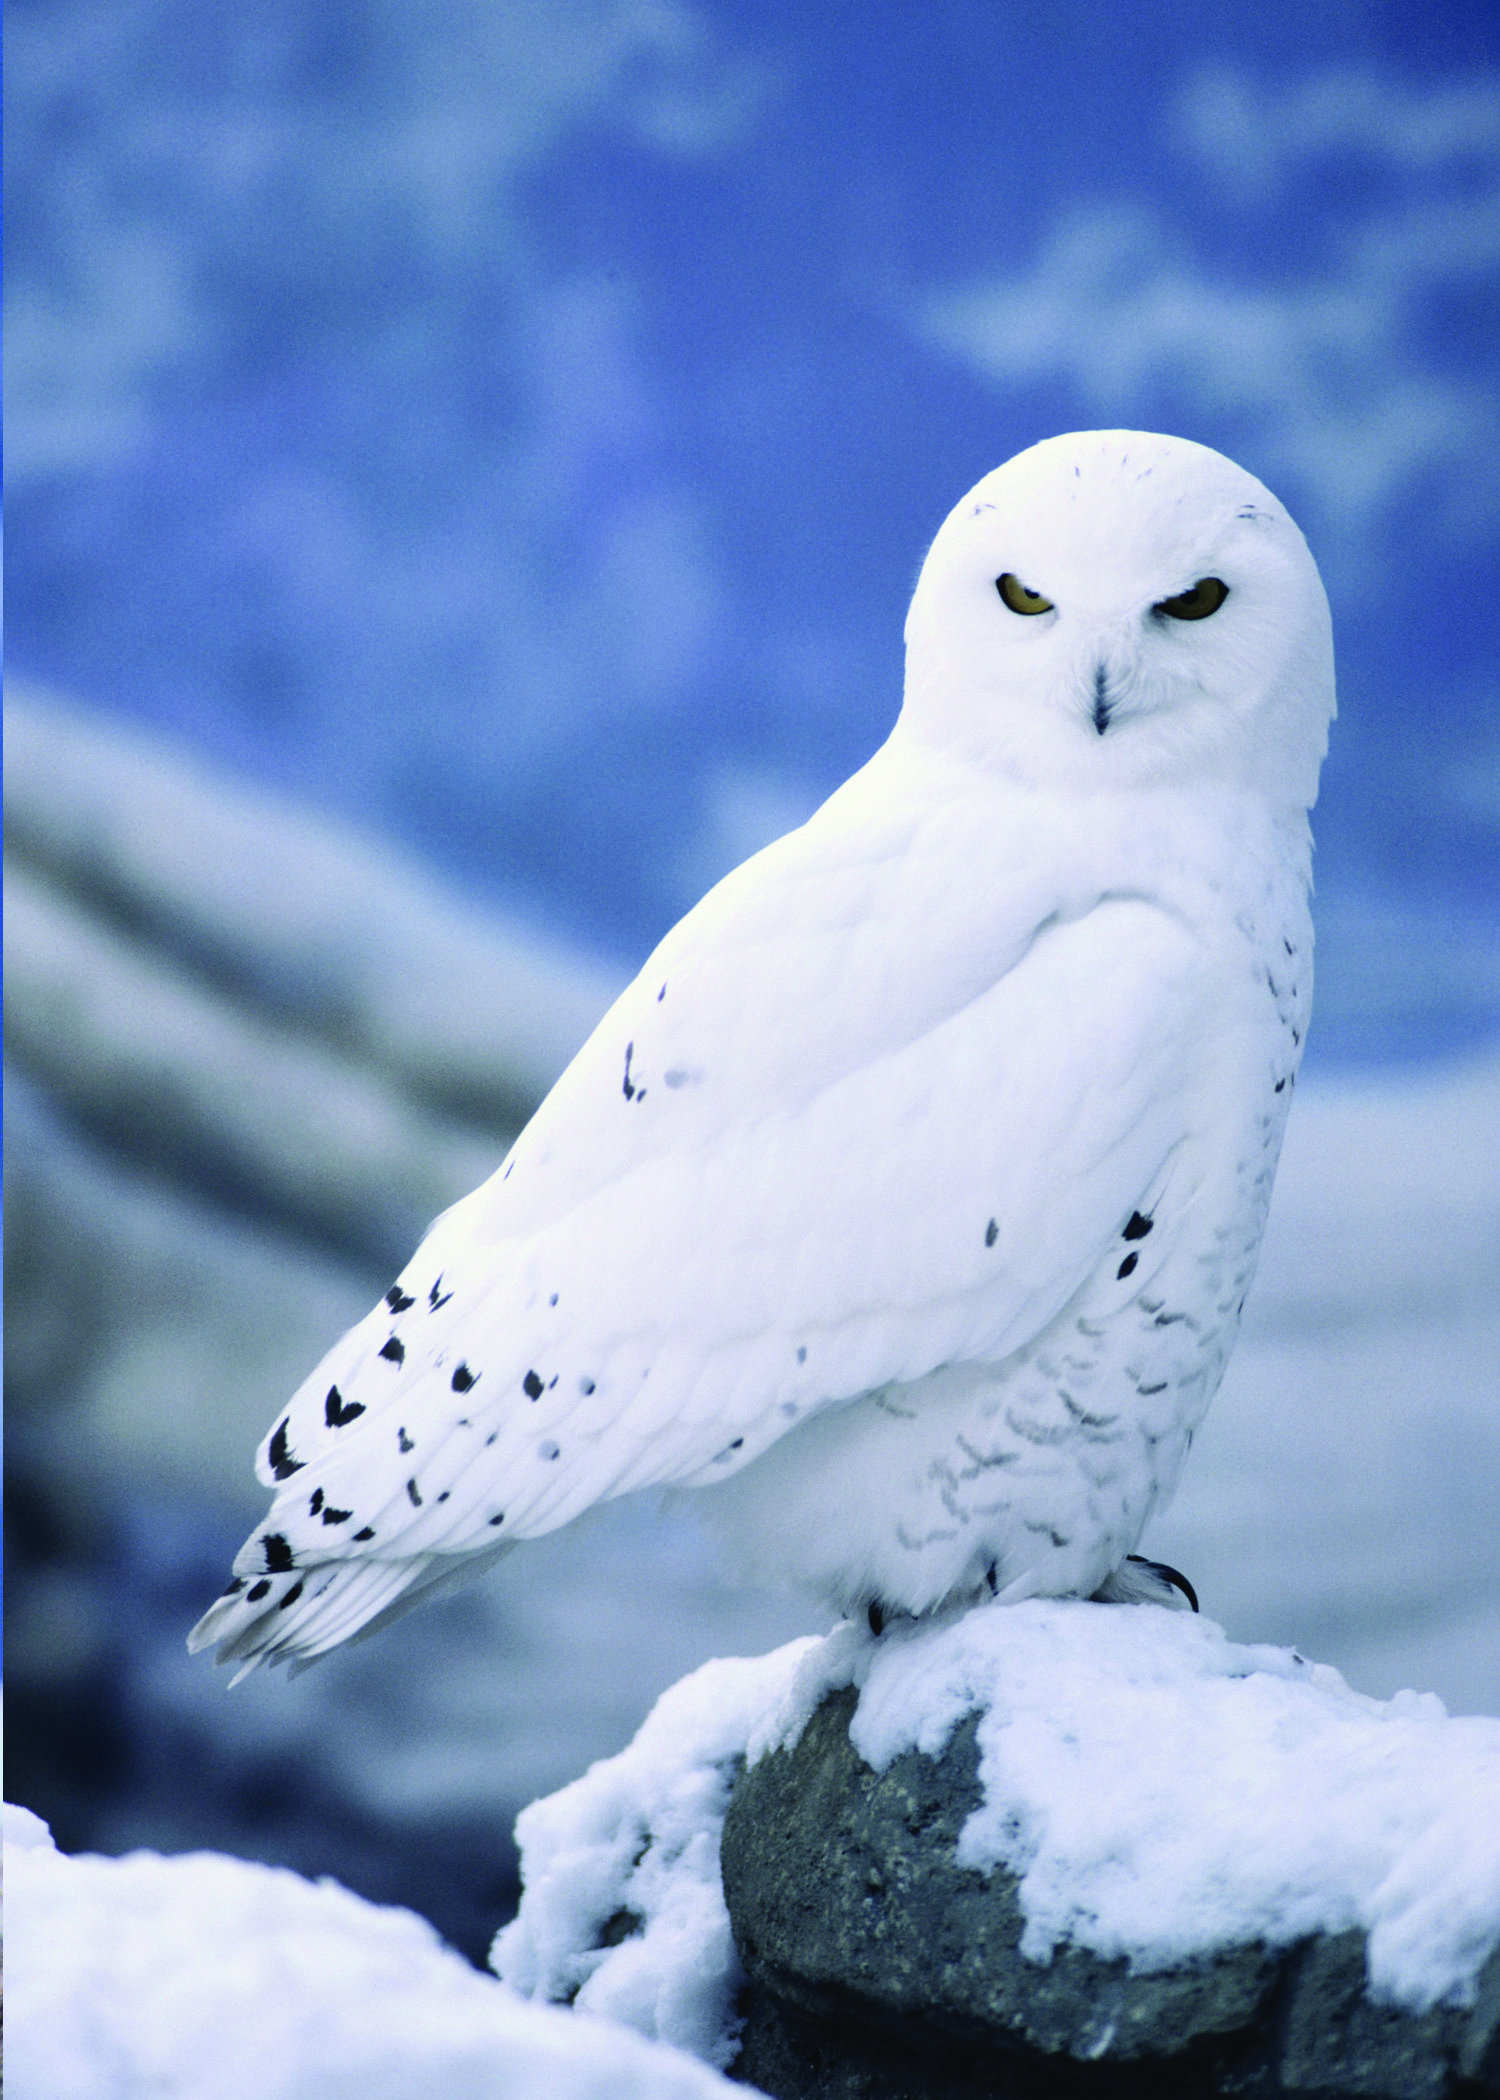 Snowy owls are magnificent birds that depend on threatened